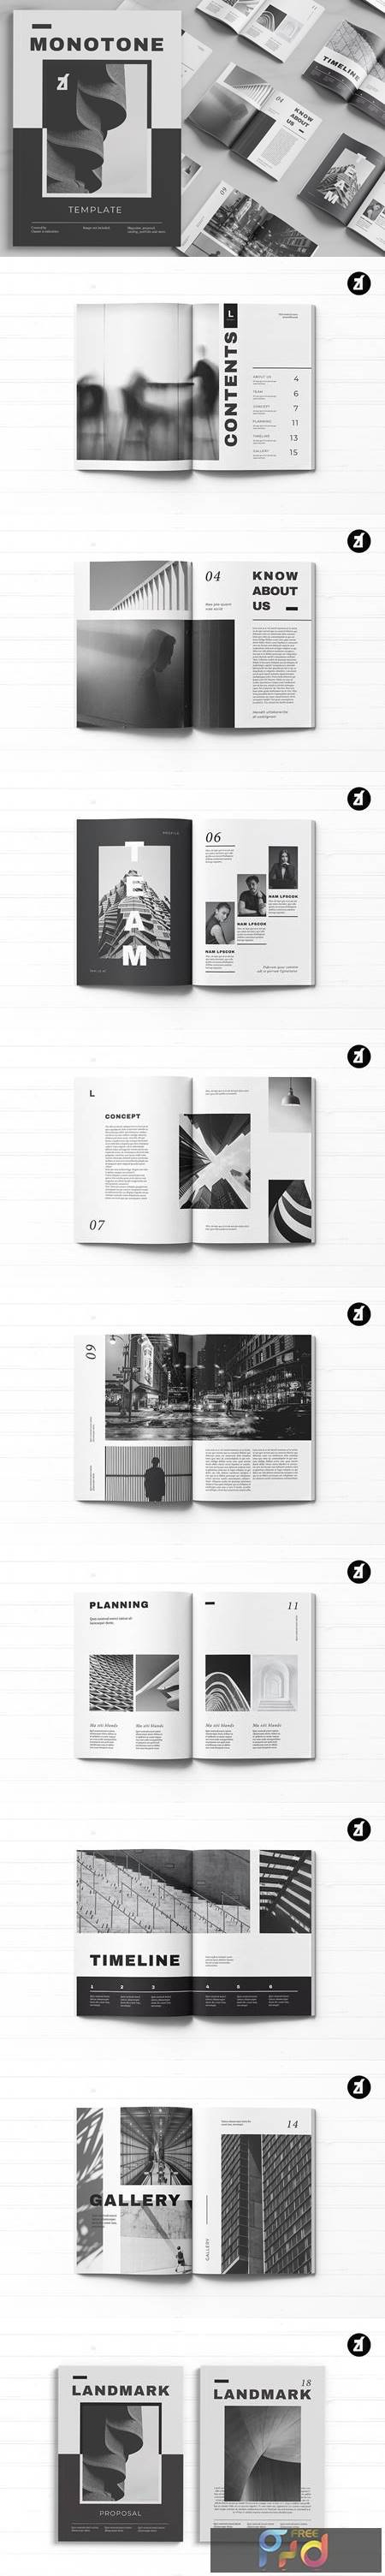 Download Monotone magazine multi-purpose book 5243100 - FreePSDvn